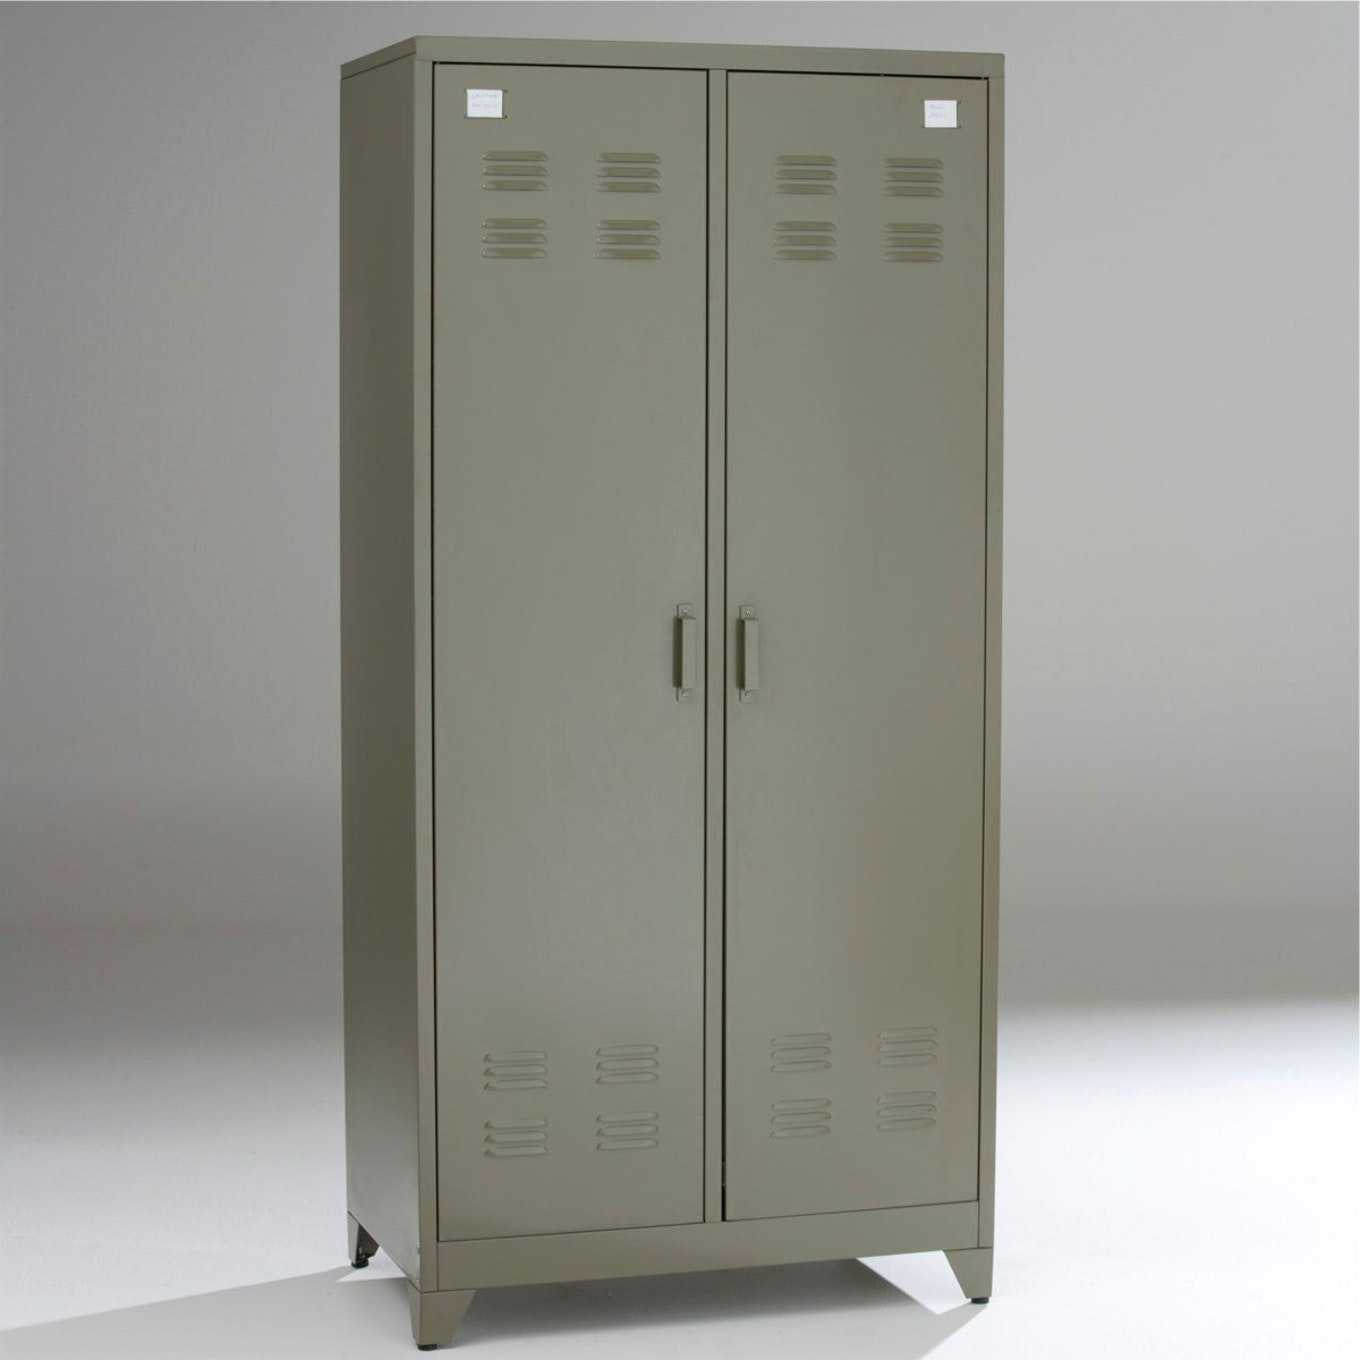 Captivant Armoire Casier Métallique | Trainingsstalmaikewiebelitz